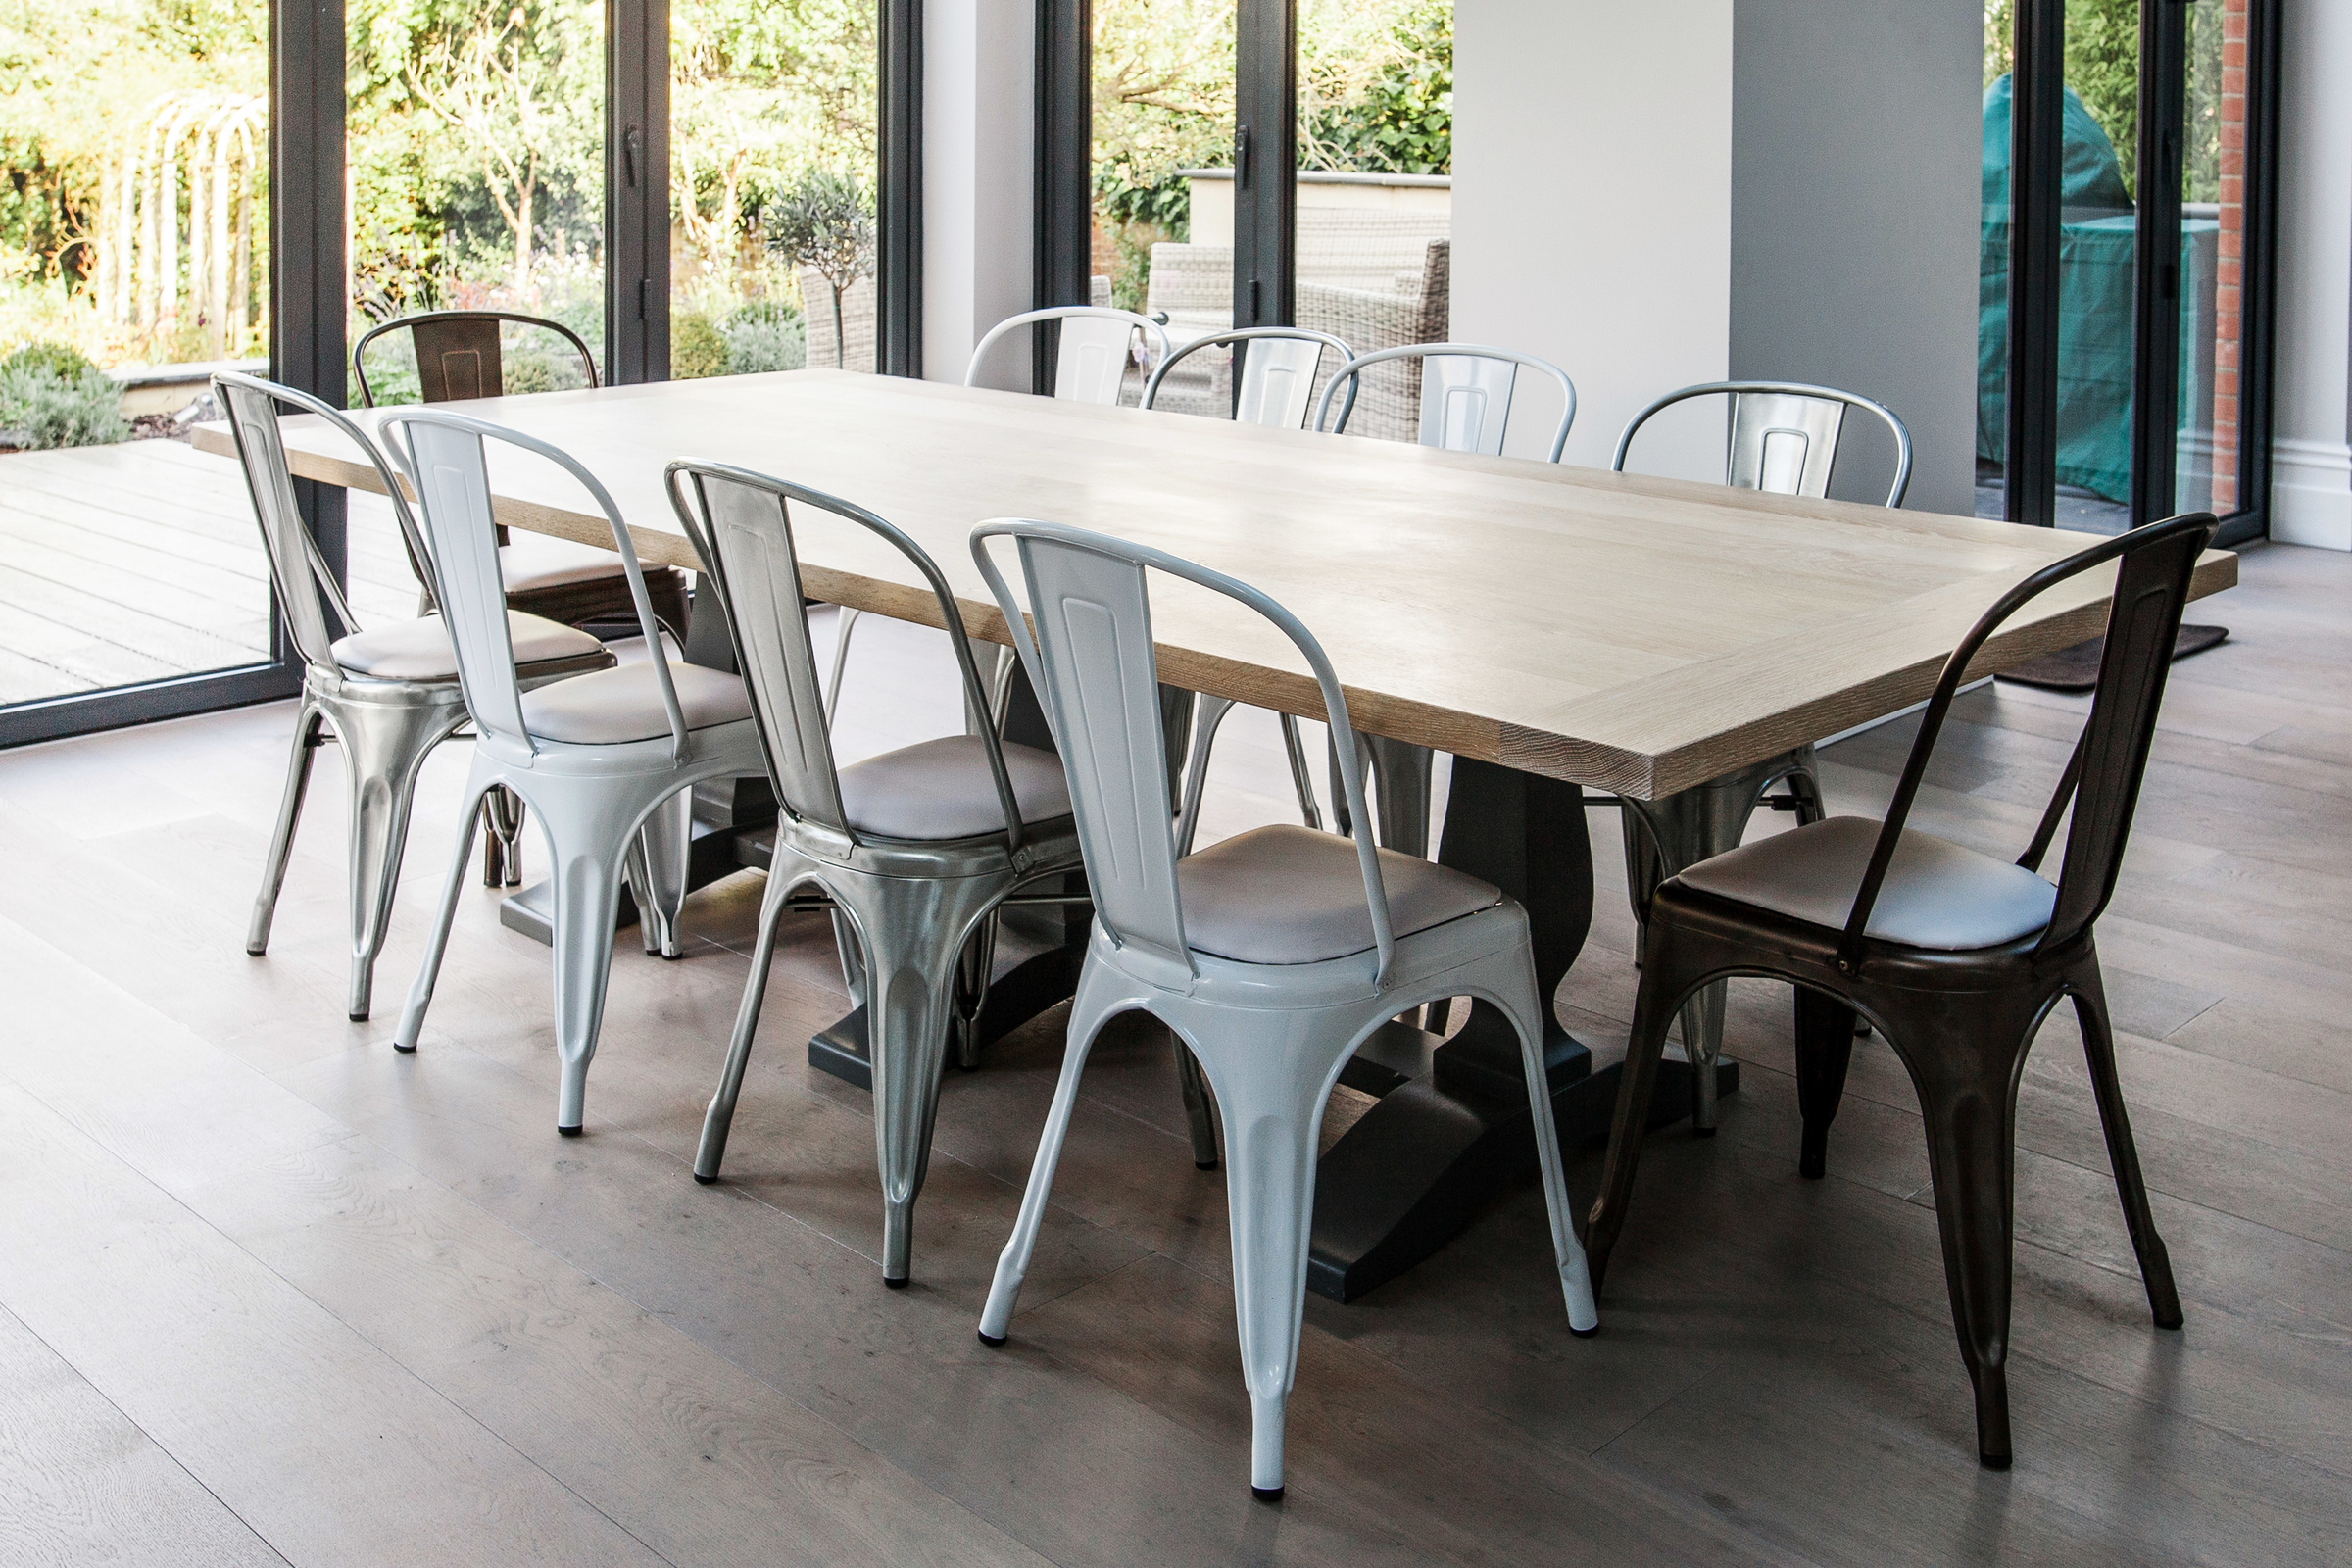 Burlanes Handcrafted Dining Table